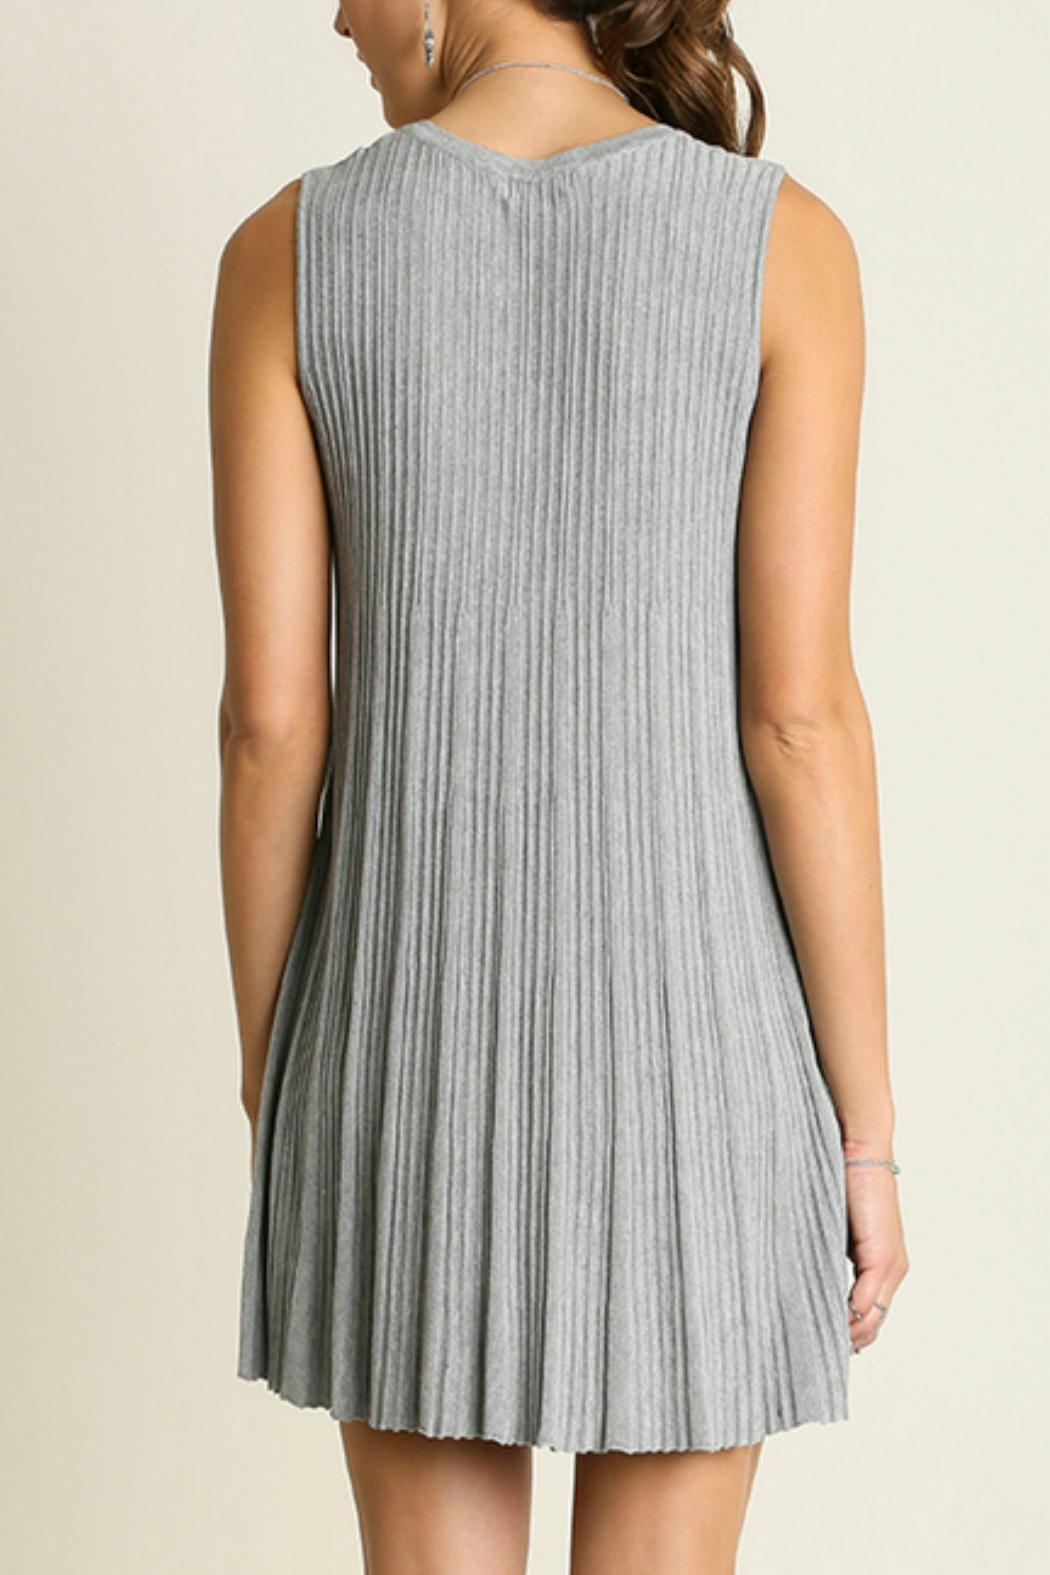 Umgee USA Sleeveless Keyhole Dress - Side Cropped Image